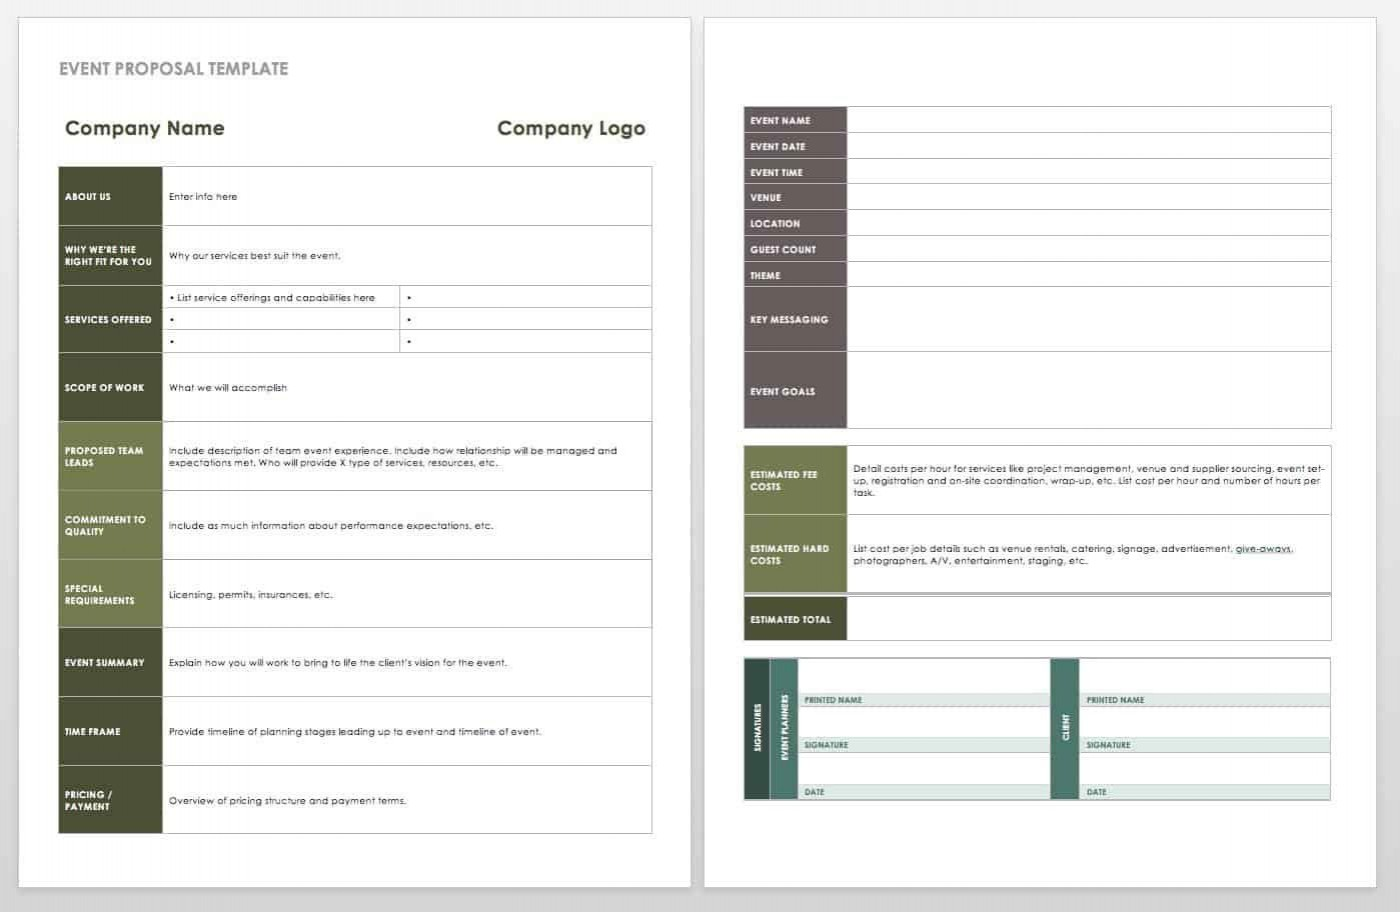 006 Fearsome Free Event Planner Template Word High Def  Planning Contract Checklist1400